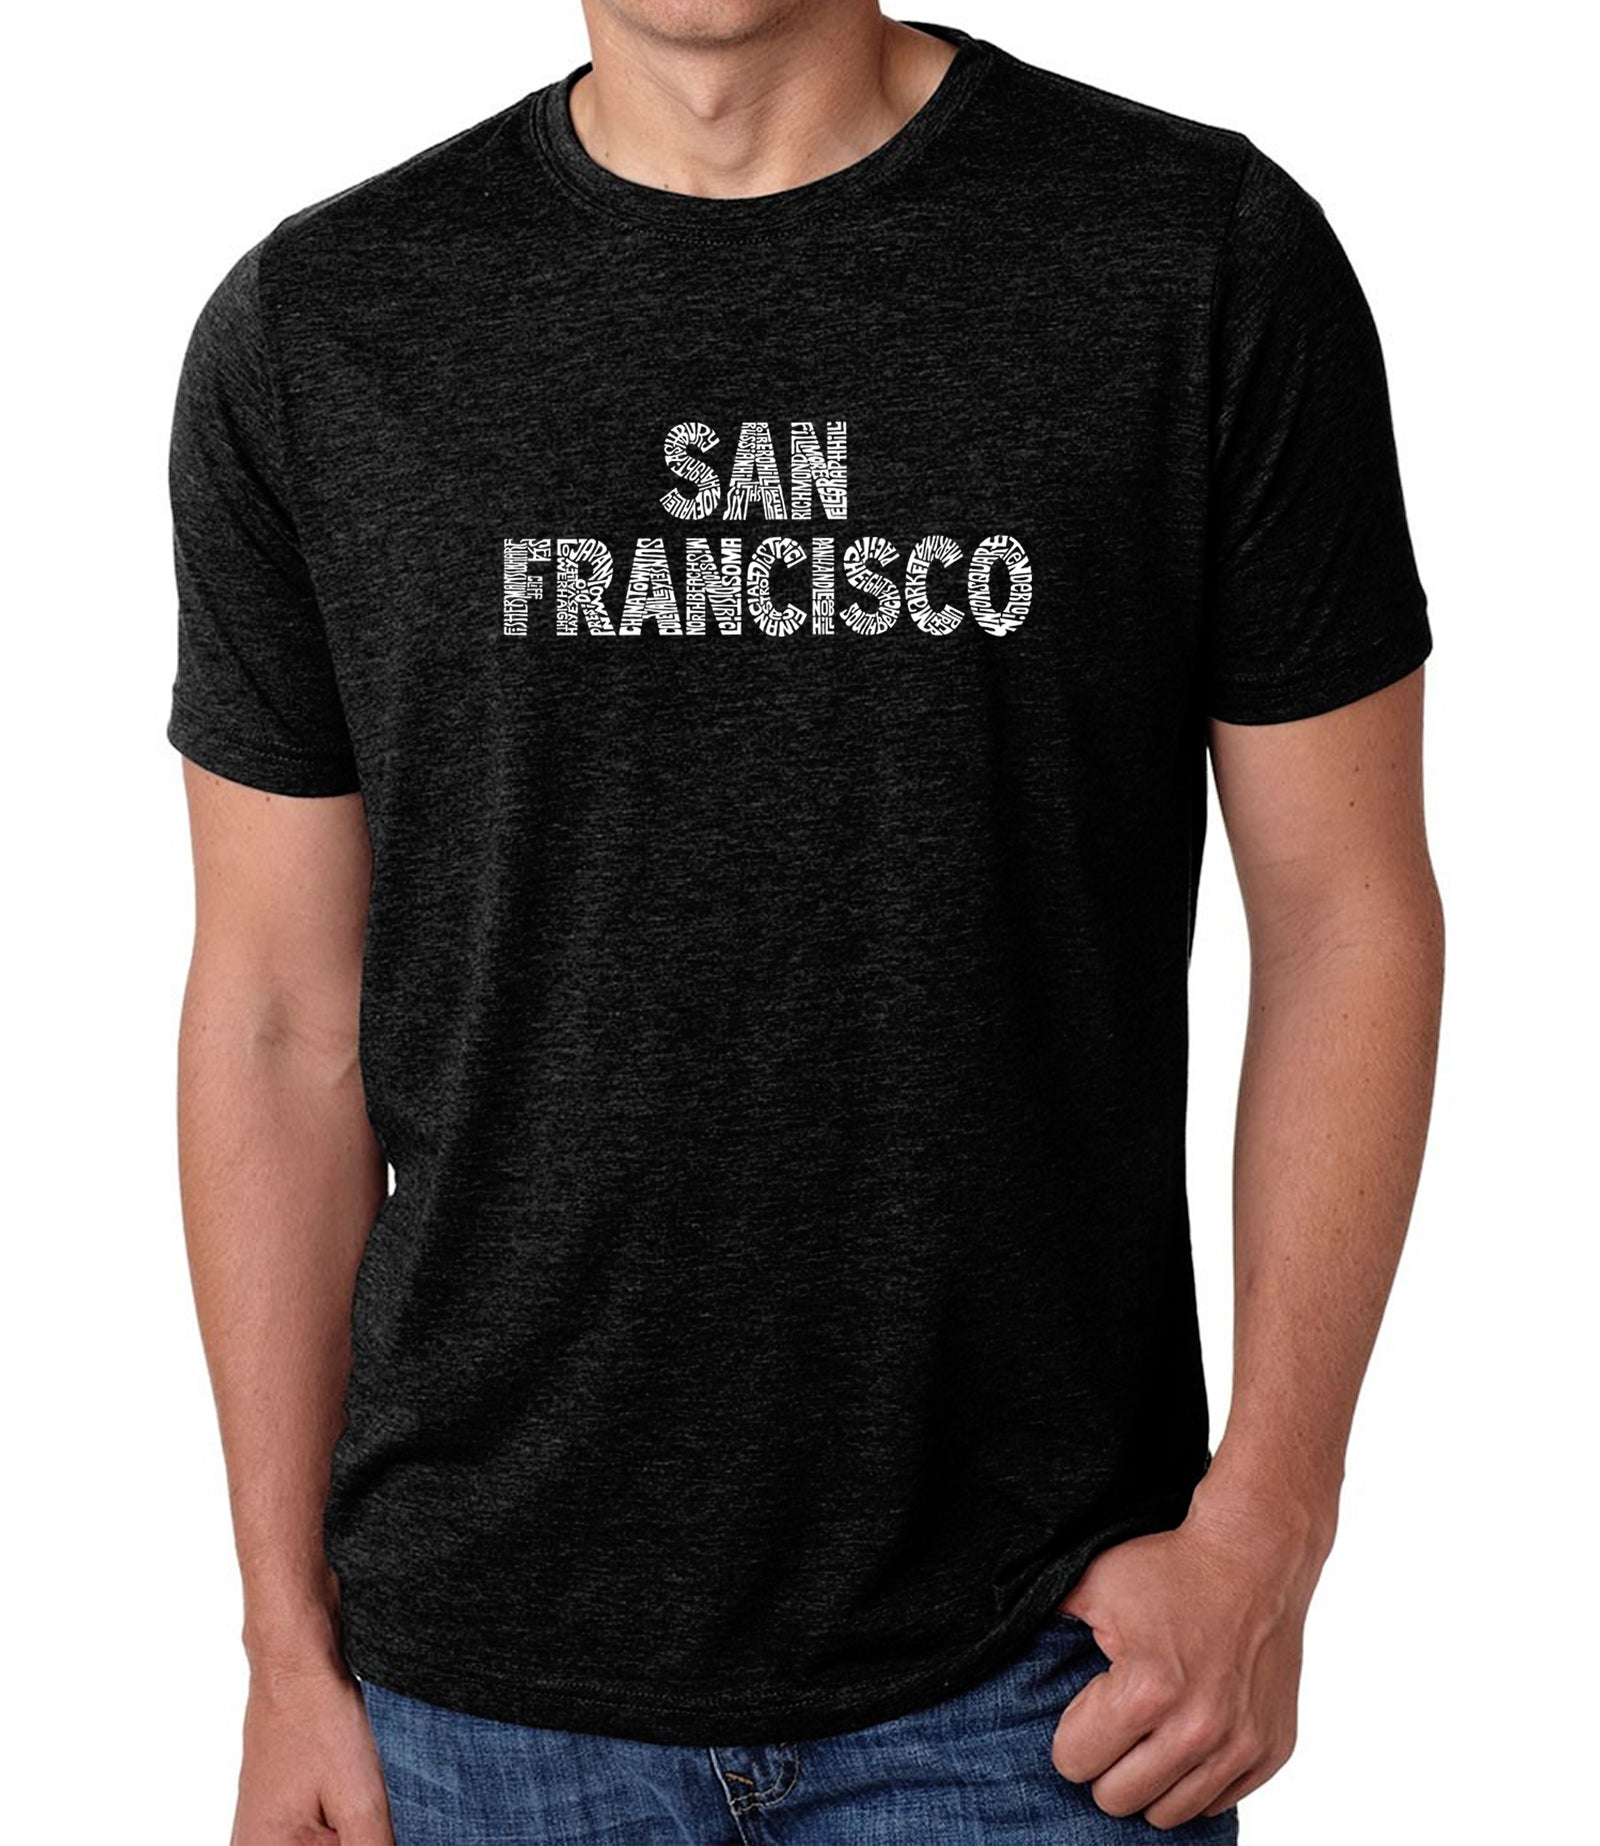 Men's Premium Blend Word Art T-shirt - SAN FRANCISCO NEIGHBORHOODS